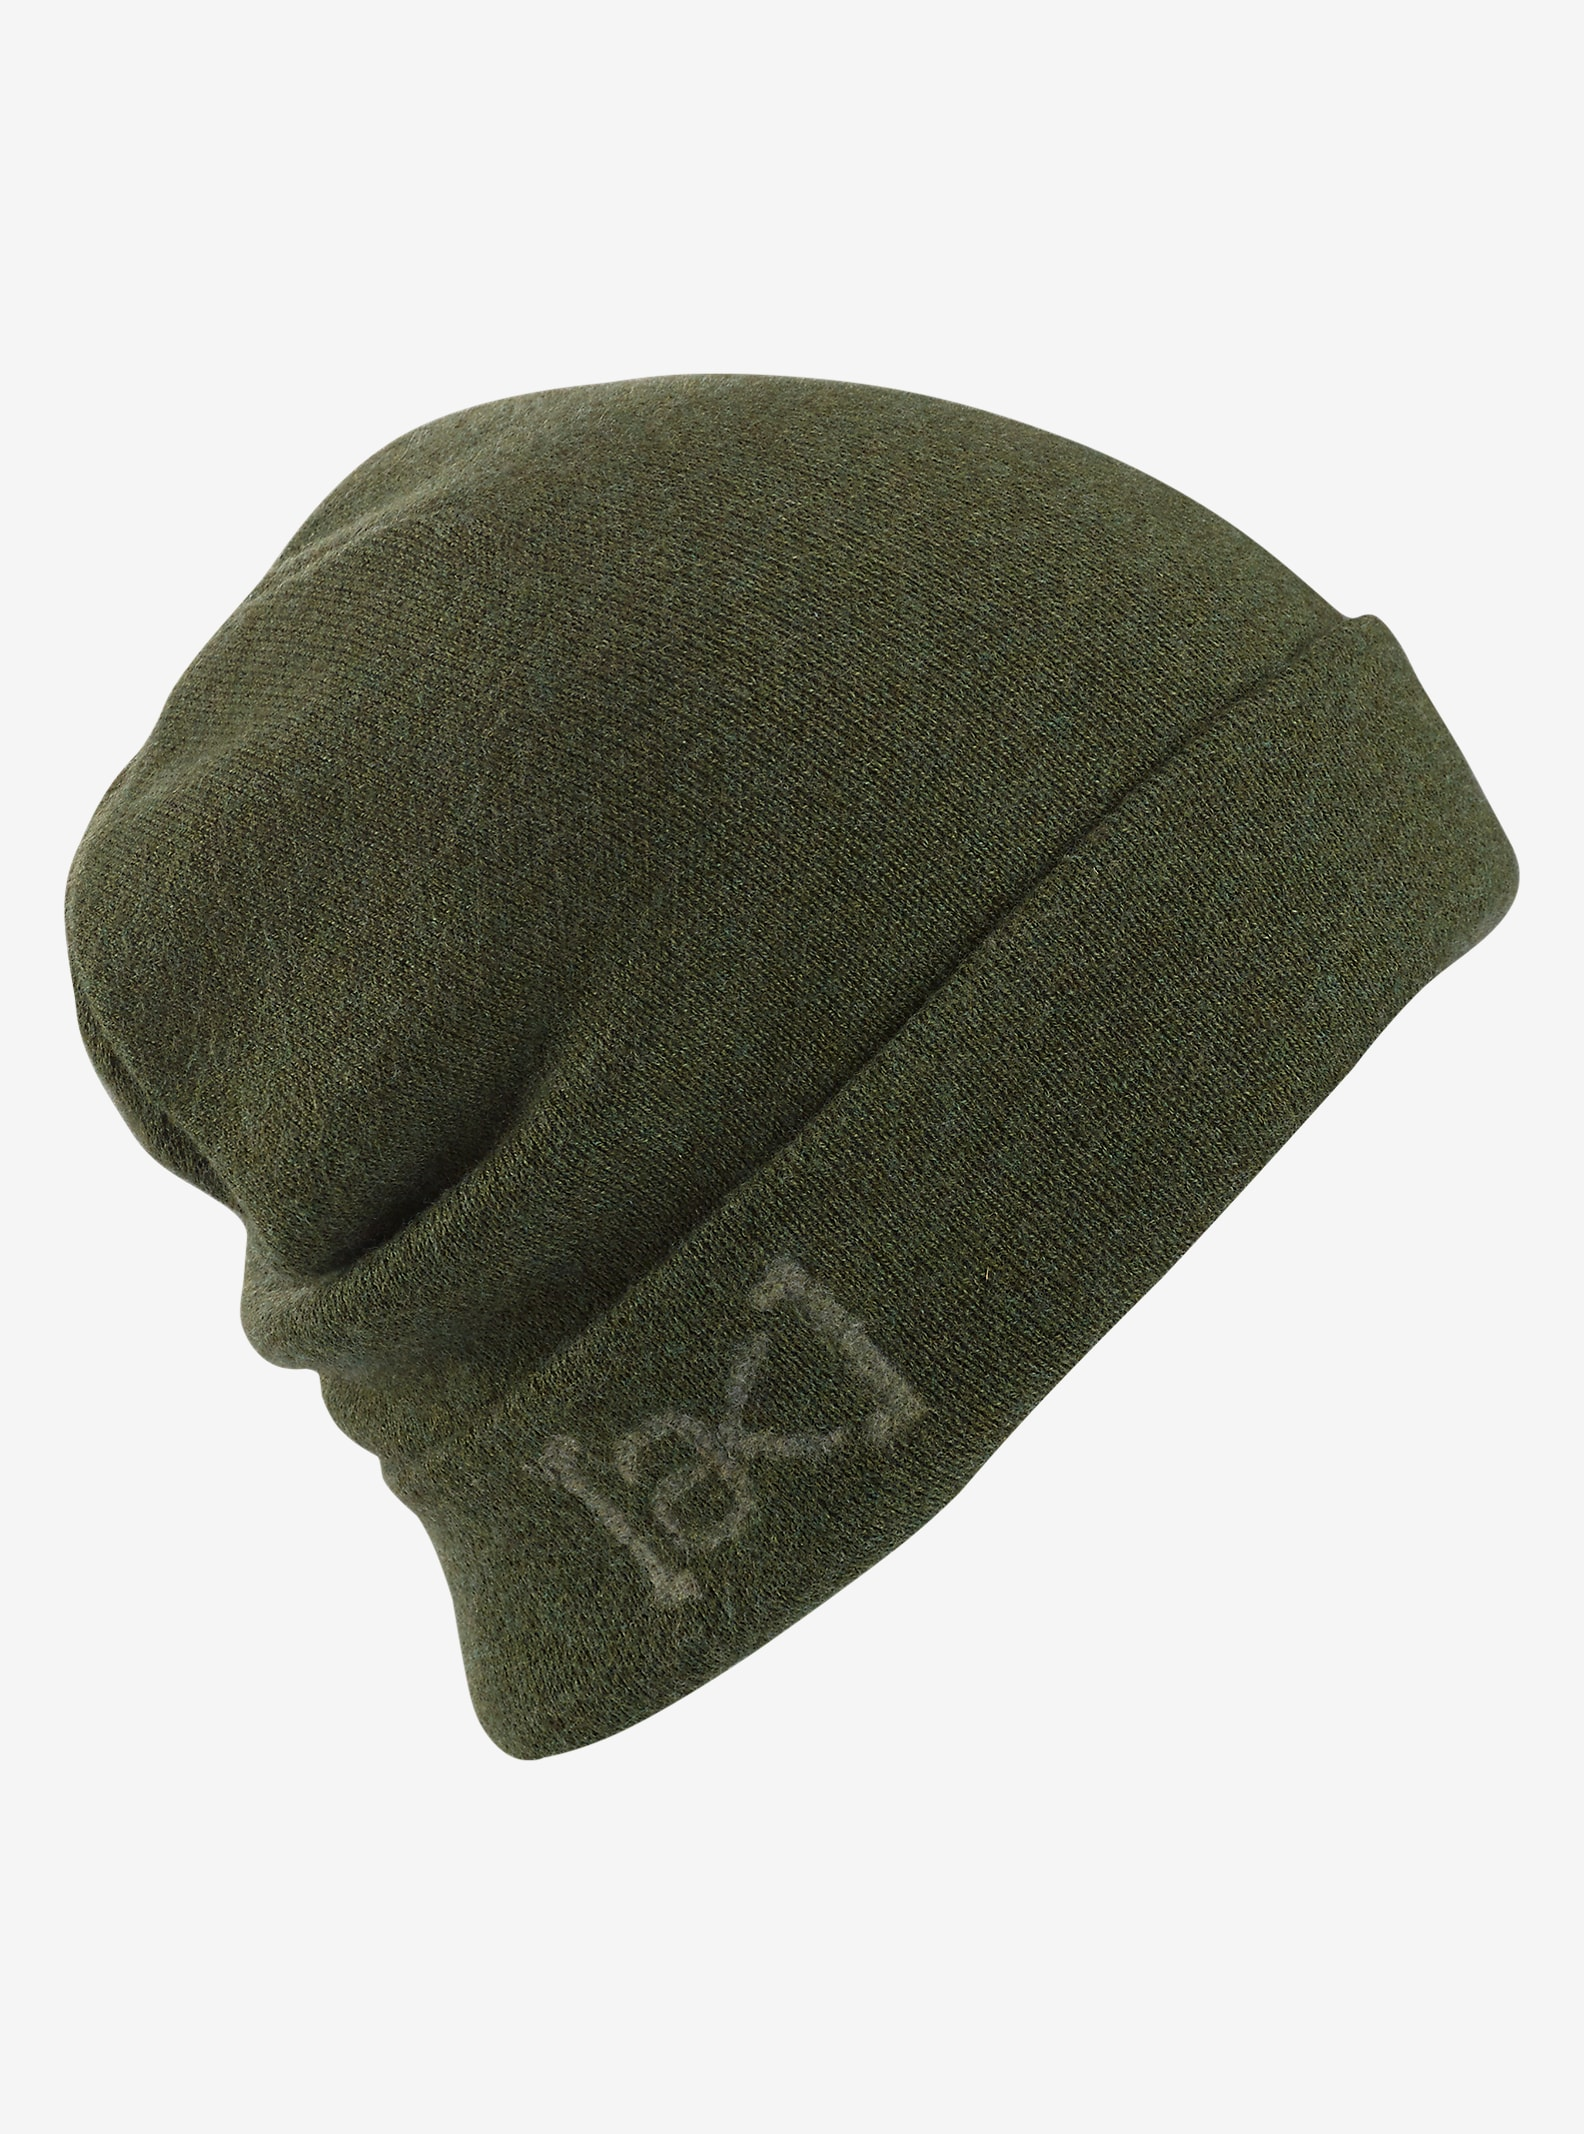 Burton [ak] Stagger Beanie shown in Fir